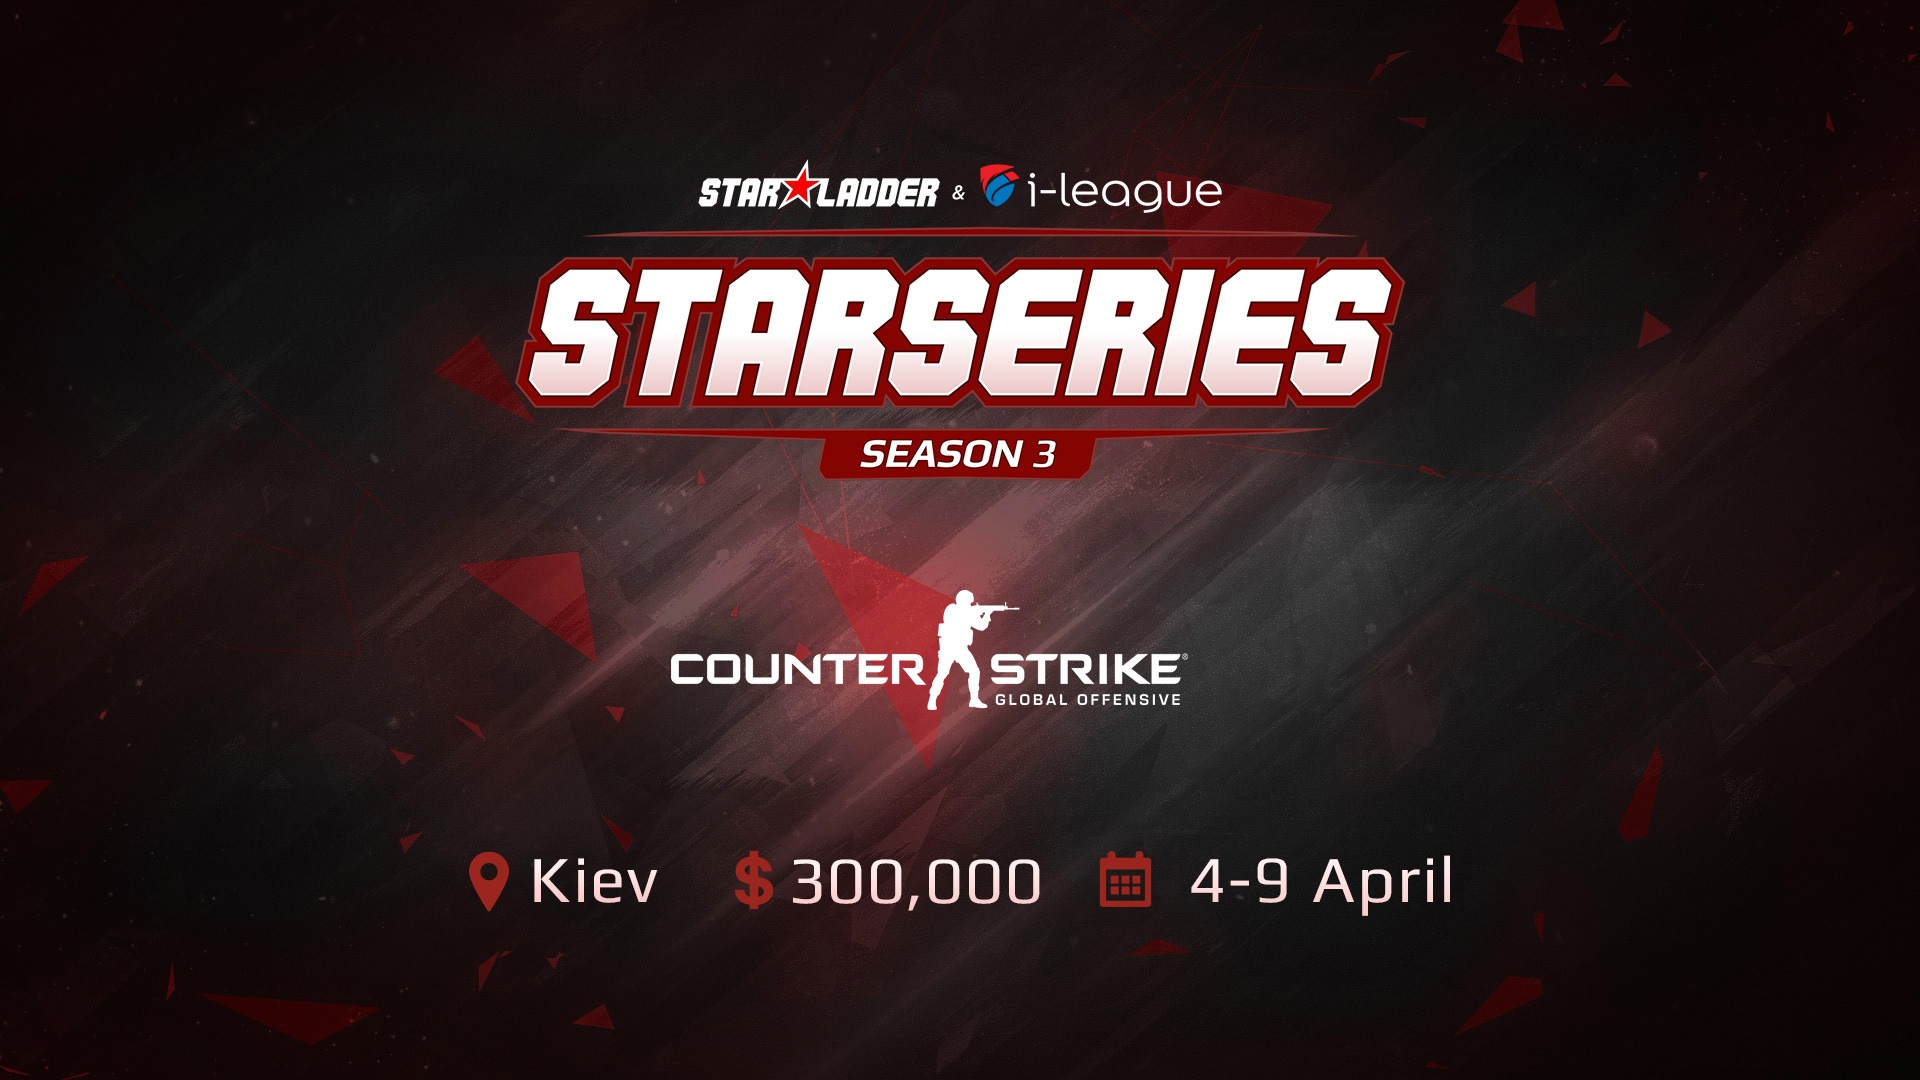 SL i-League CS:GO StarSeries S3 announces prize pool, location and event details